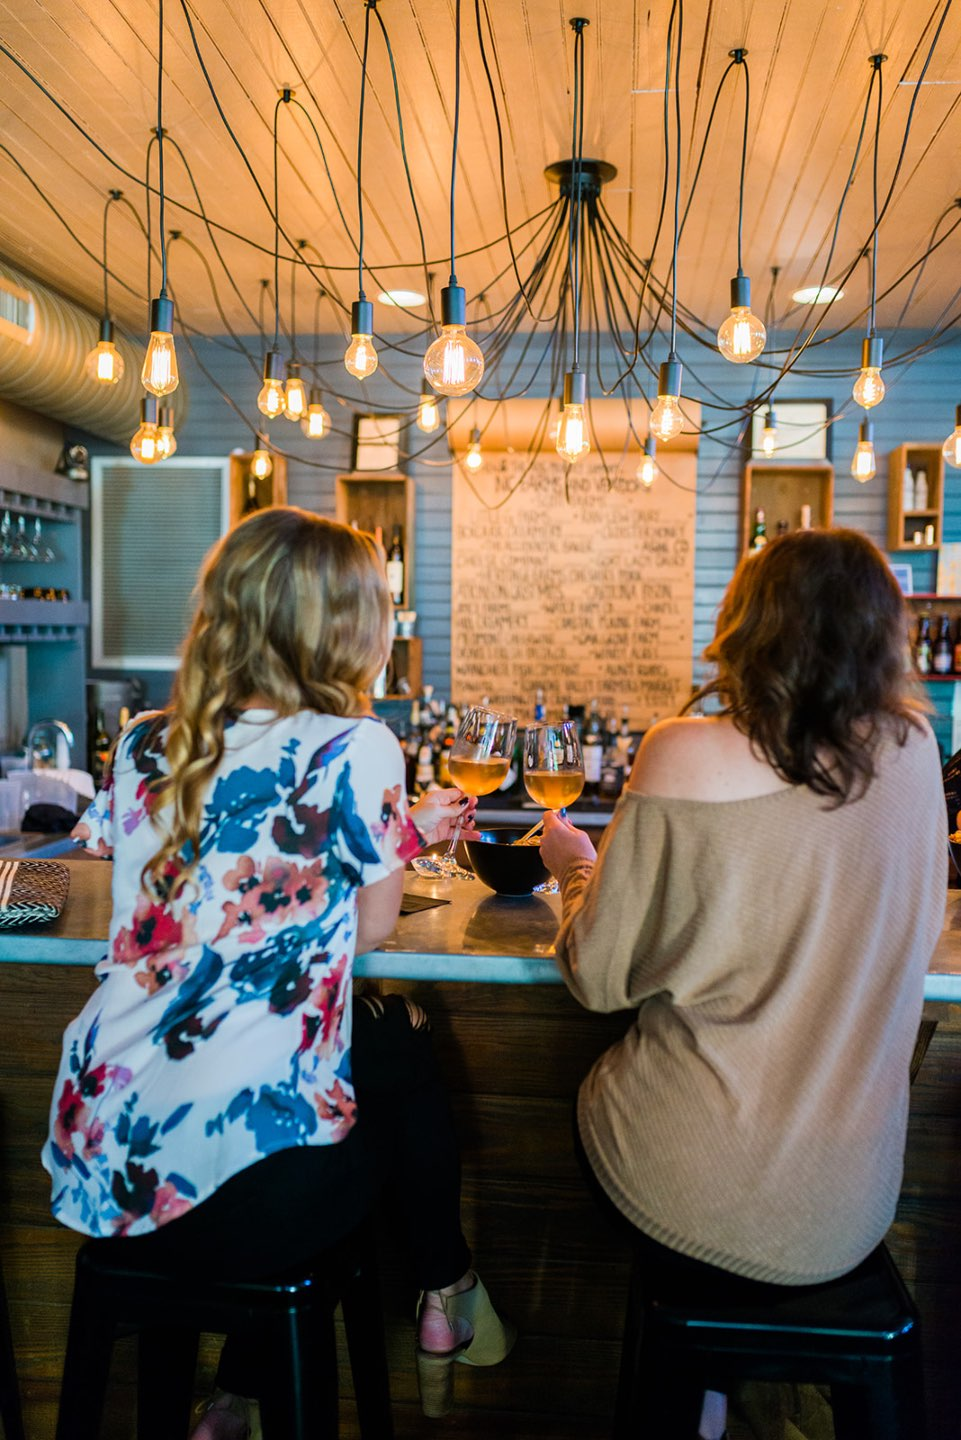 Most Popular Posts of 2020 - I'm Fixin' To - @imfixintoblog |Most Popular Posts by popular NC lifestyle blog, I'm Fixin' To: image of two women sitting together at a bar.